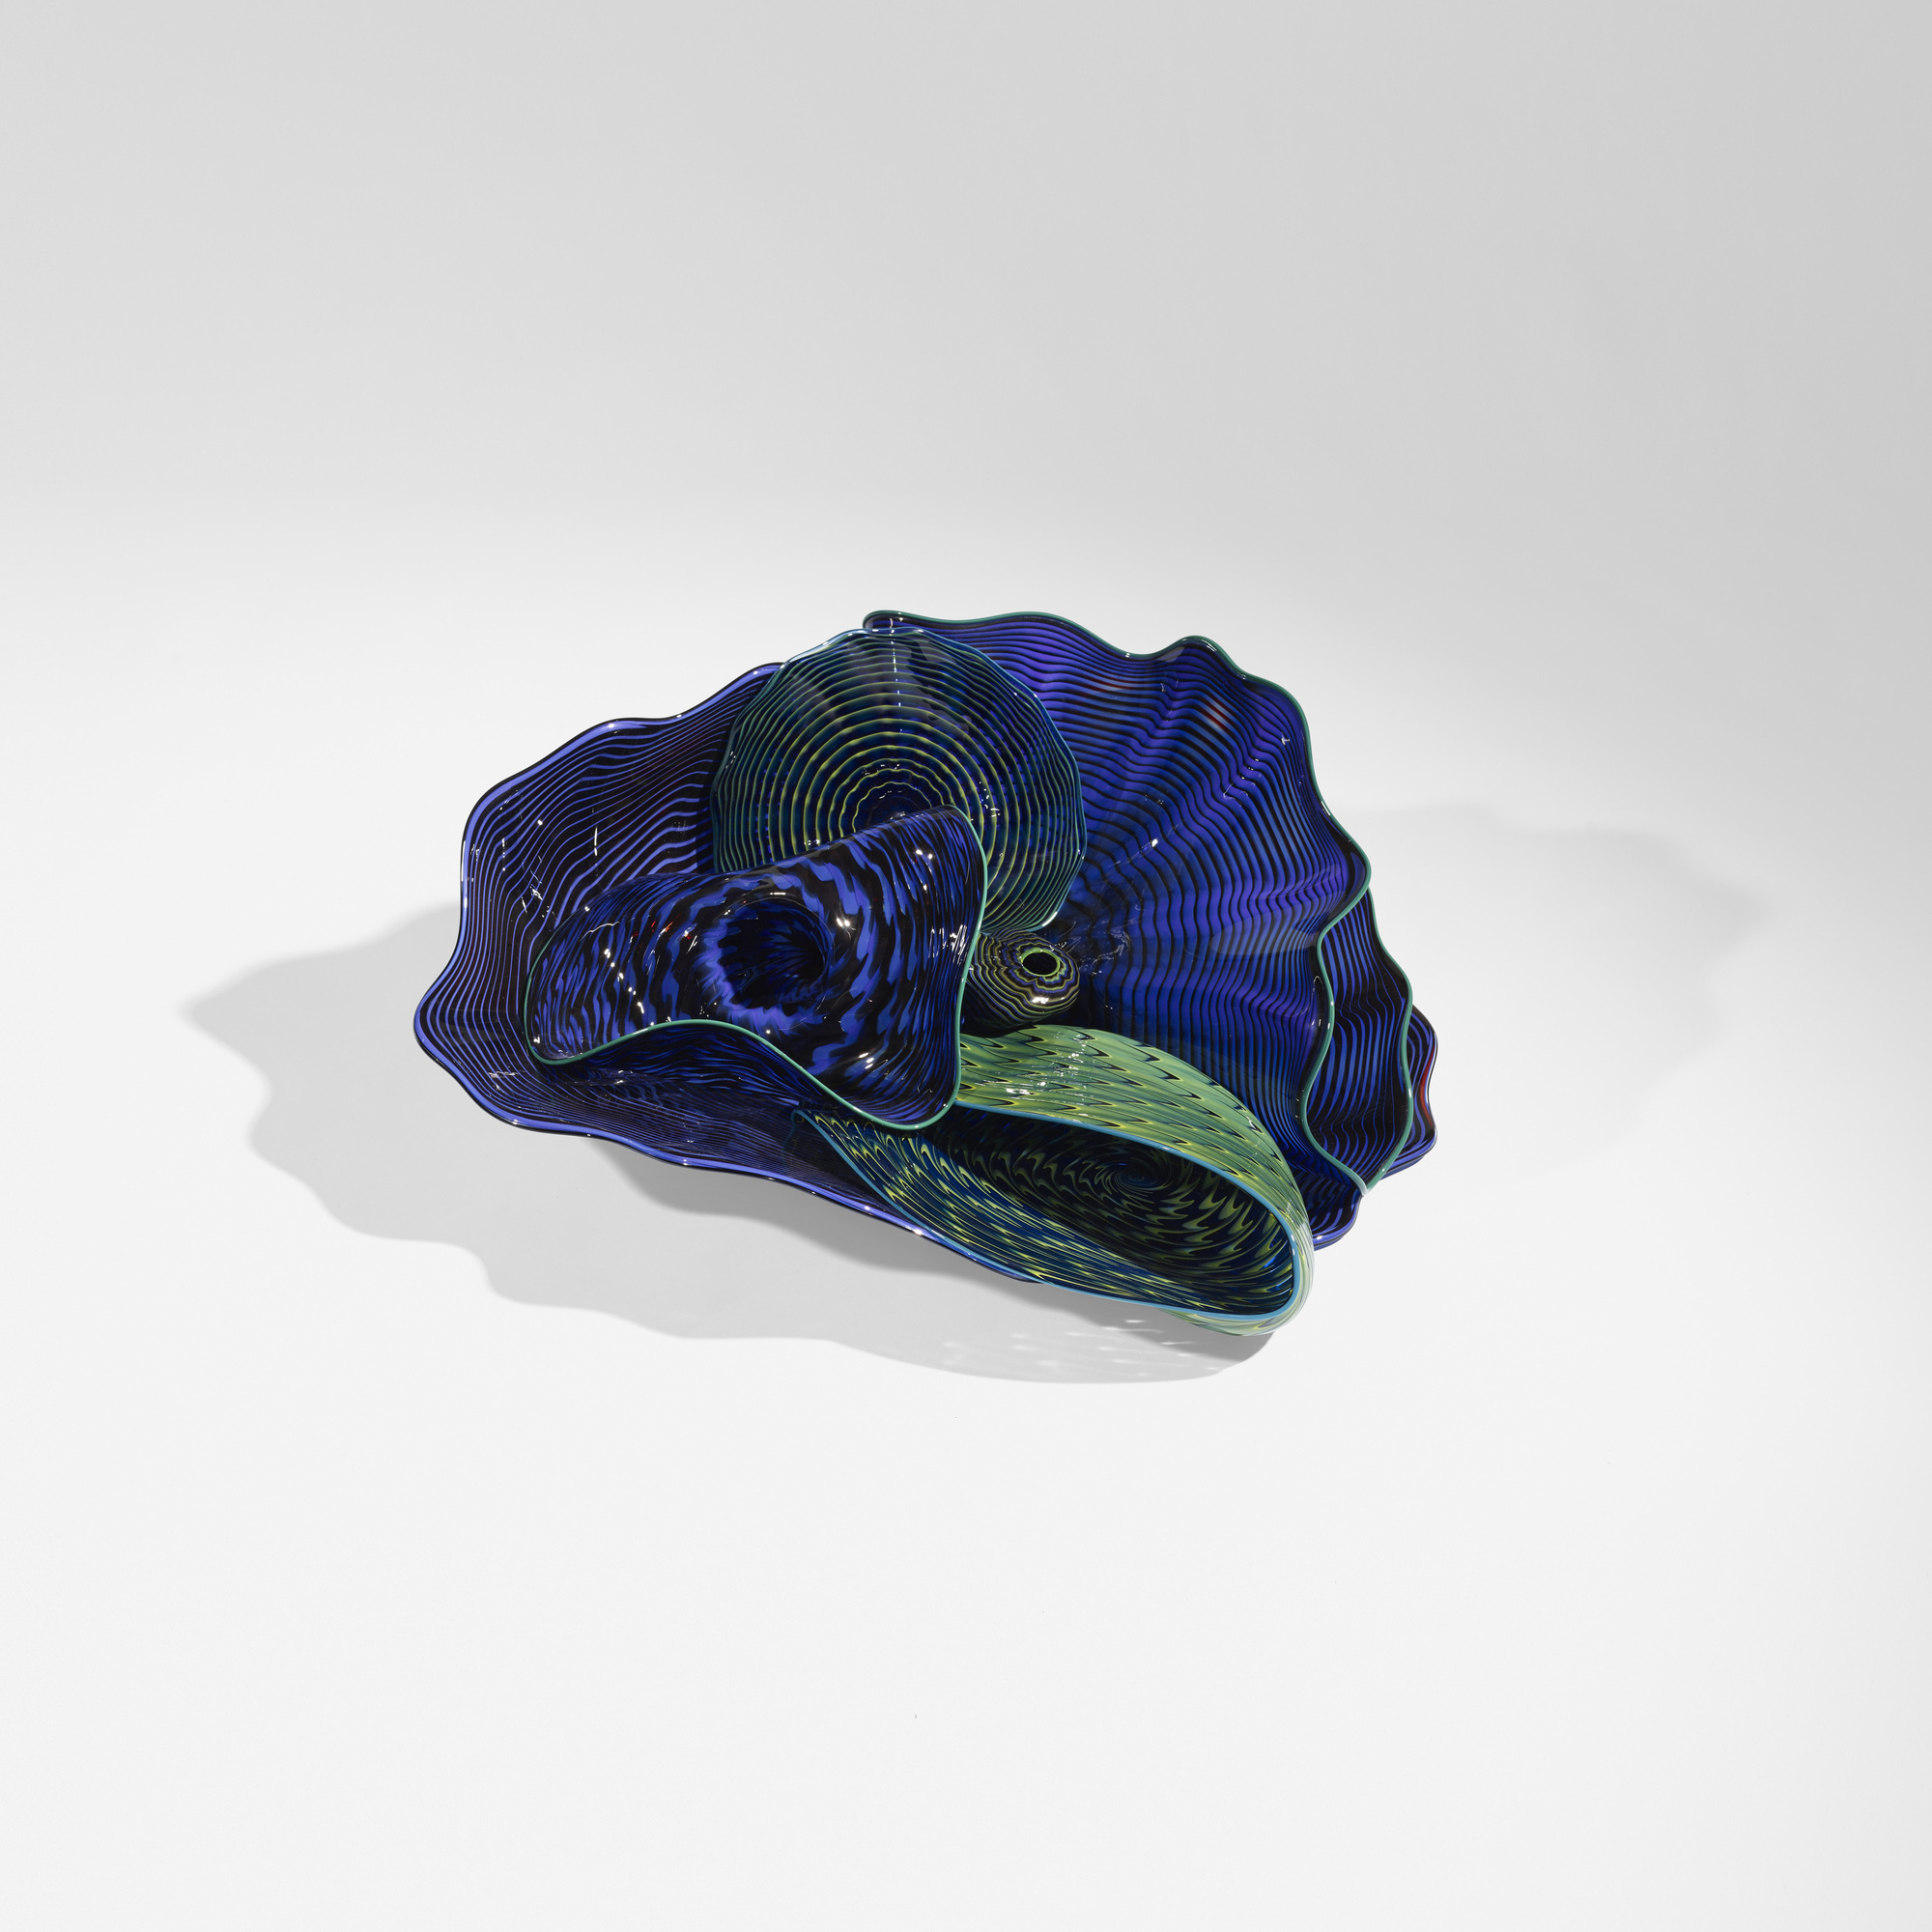 100: Dale Chihuly / Royal Blue and Chrome Green Persian Set (2 of 5)